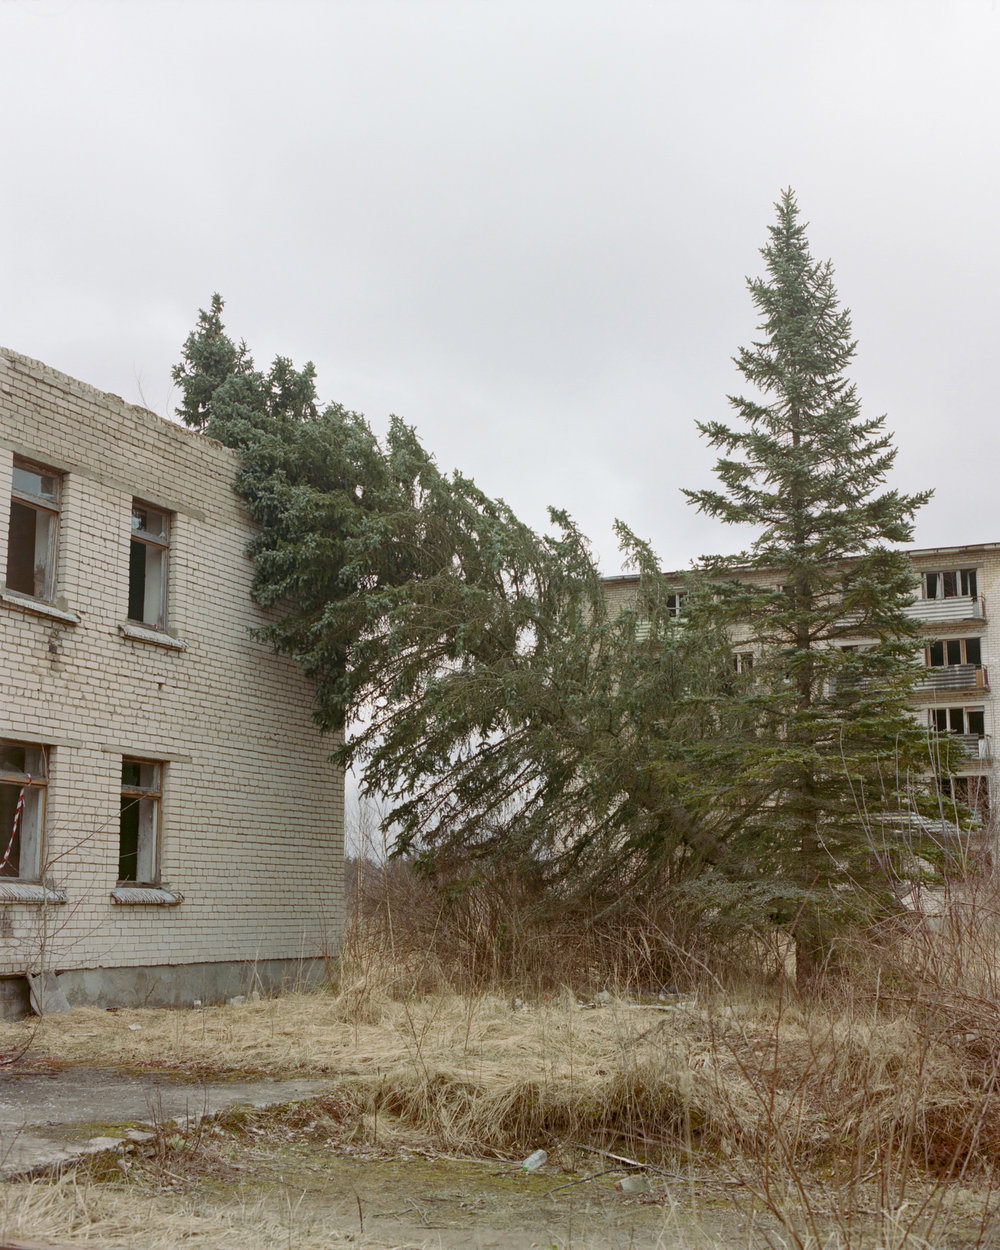 In the abandoned ex-Soviet military town of Skrunda-1, Latvia.